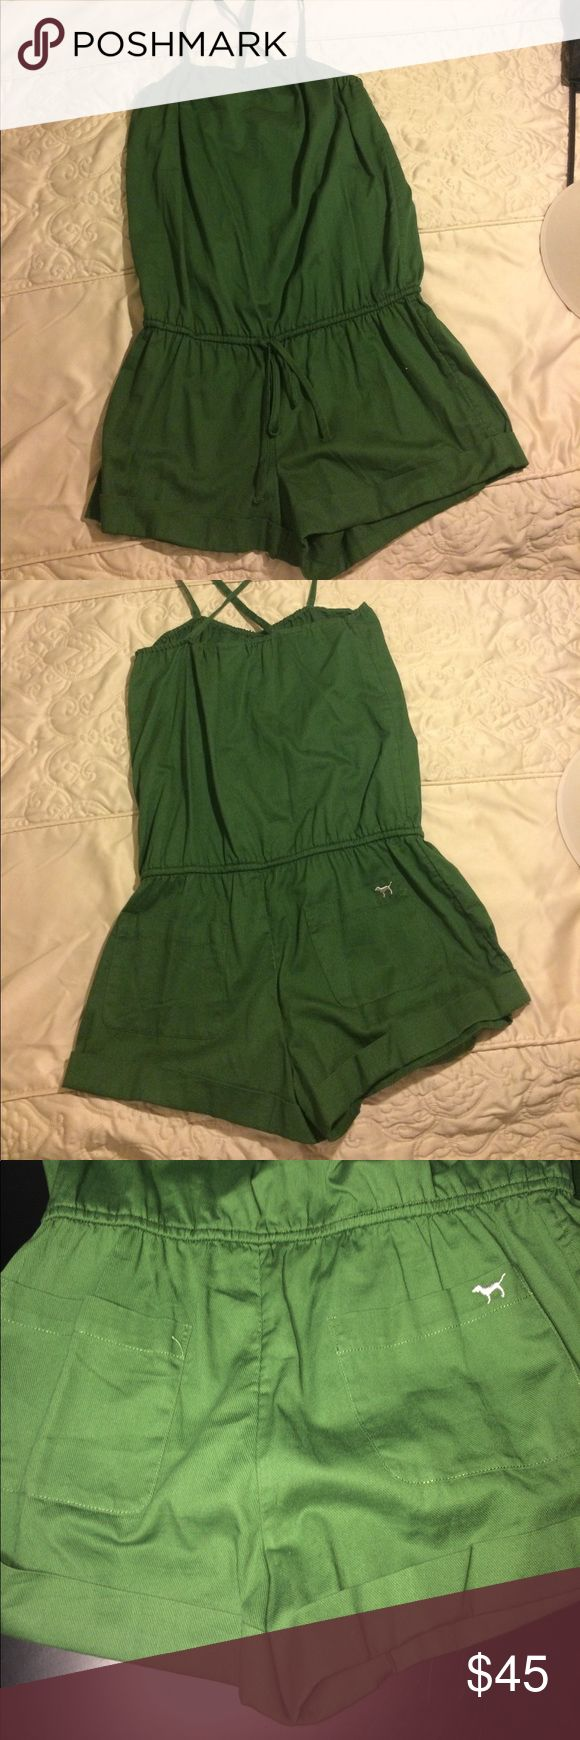 Victoria Secret Hunter Green Romper. Spring ready! Woman hunter green romper. Used once. Victoria secret logo on left butt cheek. Size XS. One piece. Can be wore with straight or crisscross straps. Adjustable elastic waist band. PINK Victoria's Secret Dresses